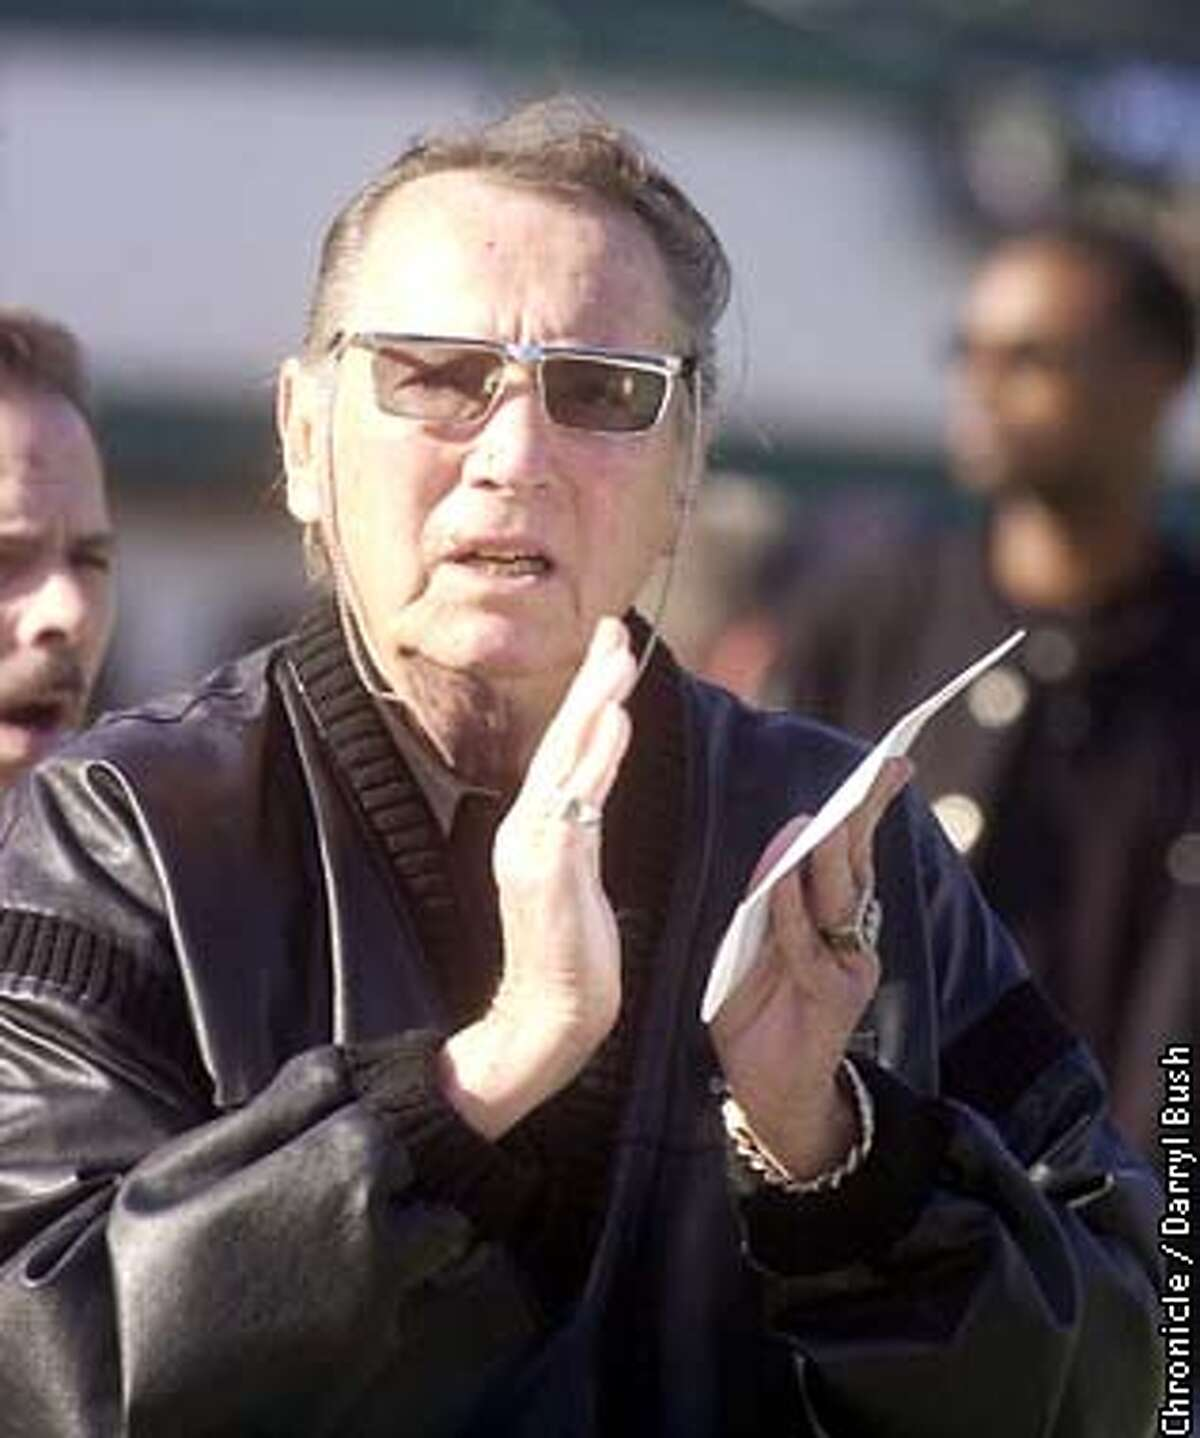 .jpg Raiders owner Al Davis on the field before the start of the game. The Oakland Raiders play the Tennessee Titans in the AFC championship game in Oakland, Ca. January 19, 2003. Darryl Bush/San Francisco Chronicle